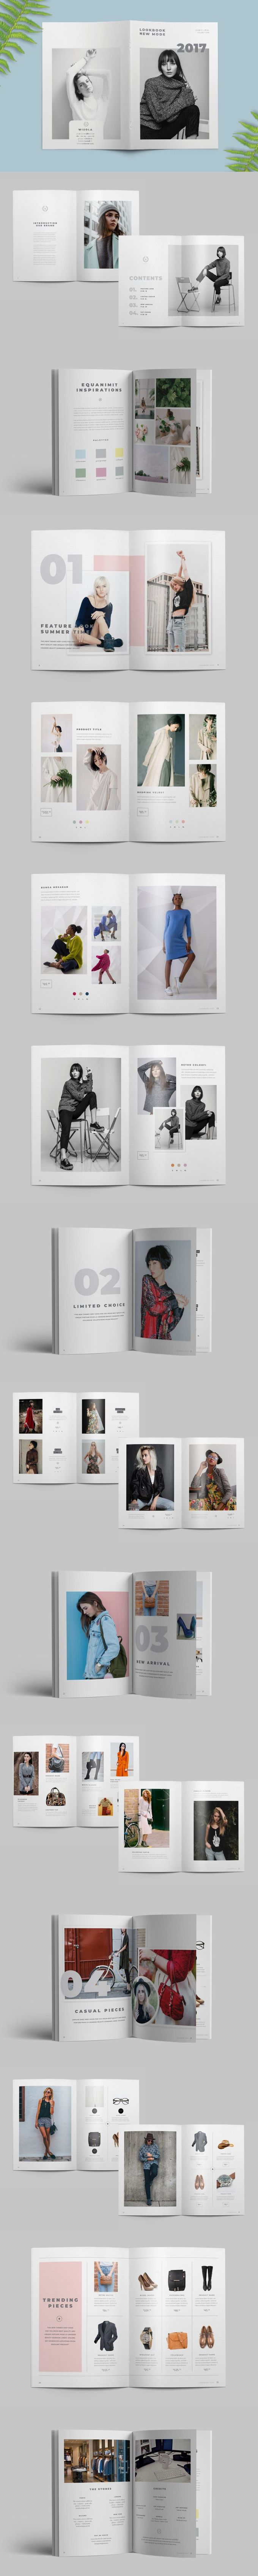 Fashion Catalog Template — Adobe InDesign #product #marketing • Download unlimited items on Envato Elements ⭡